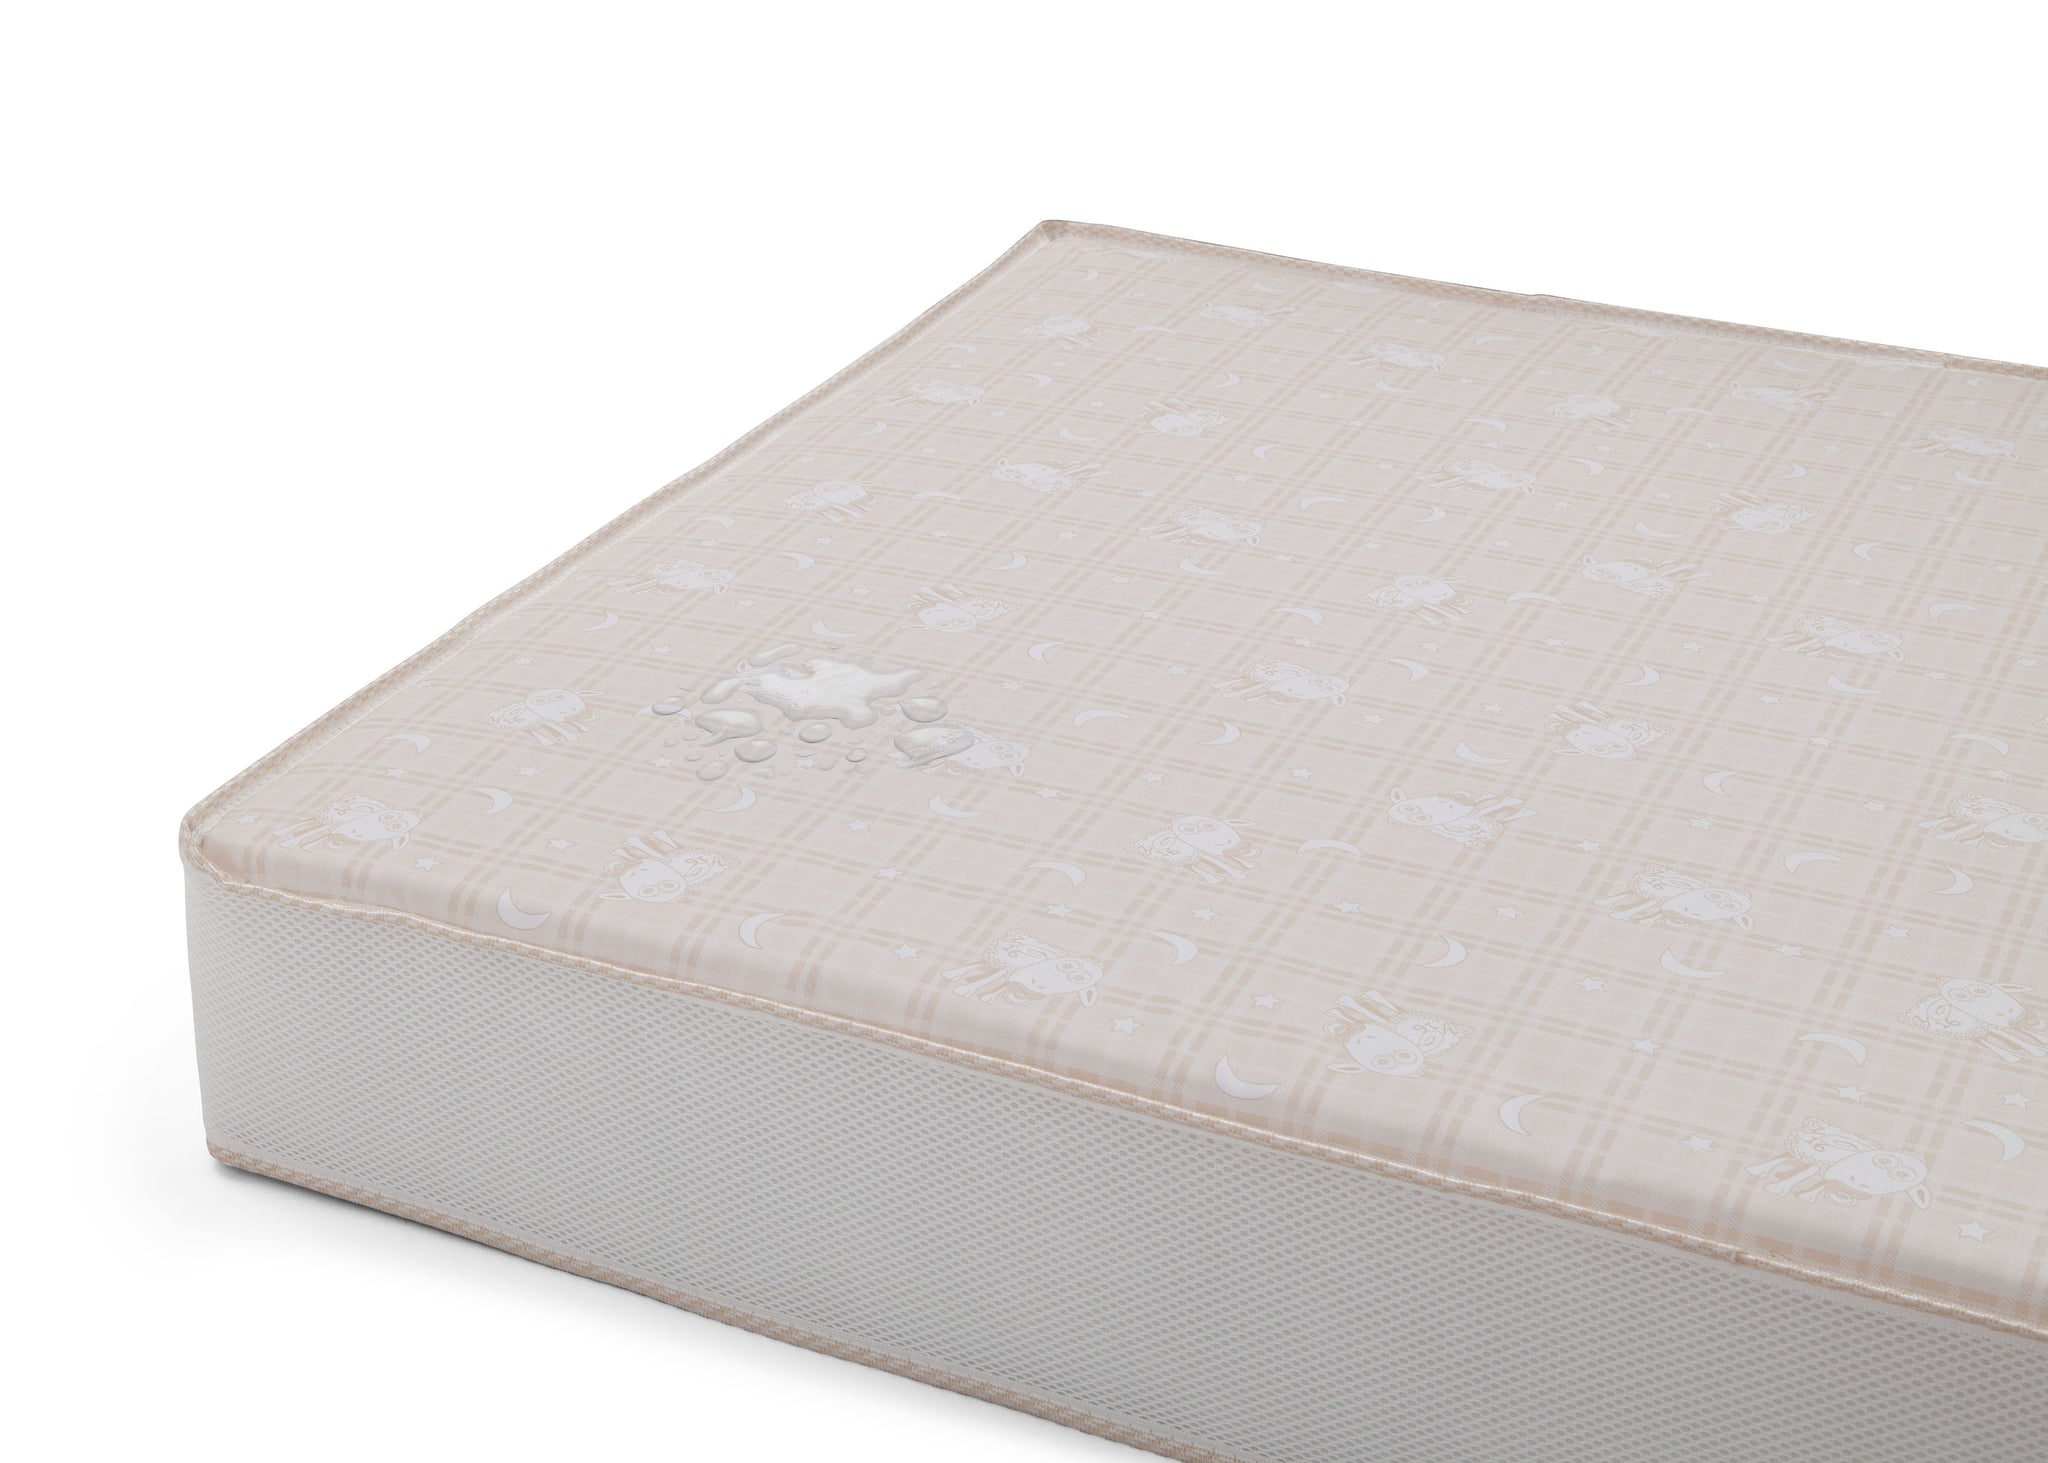 Serta Perfect Sleeper® Pirouette Crib and Toddler Mattress Drop View a4a No Color (NO)